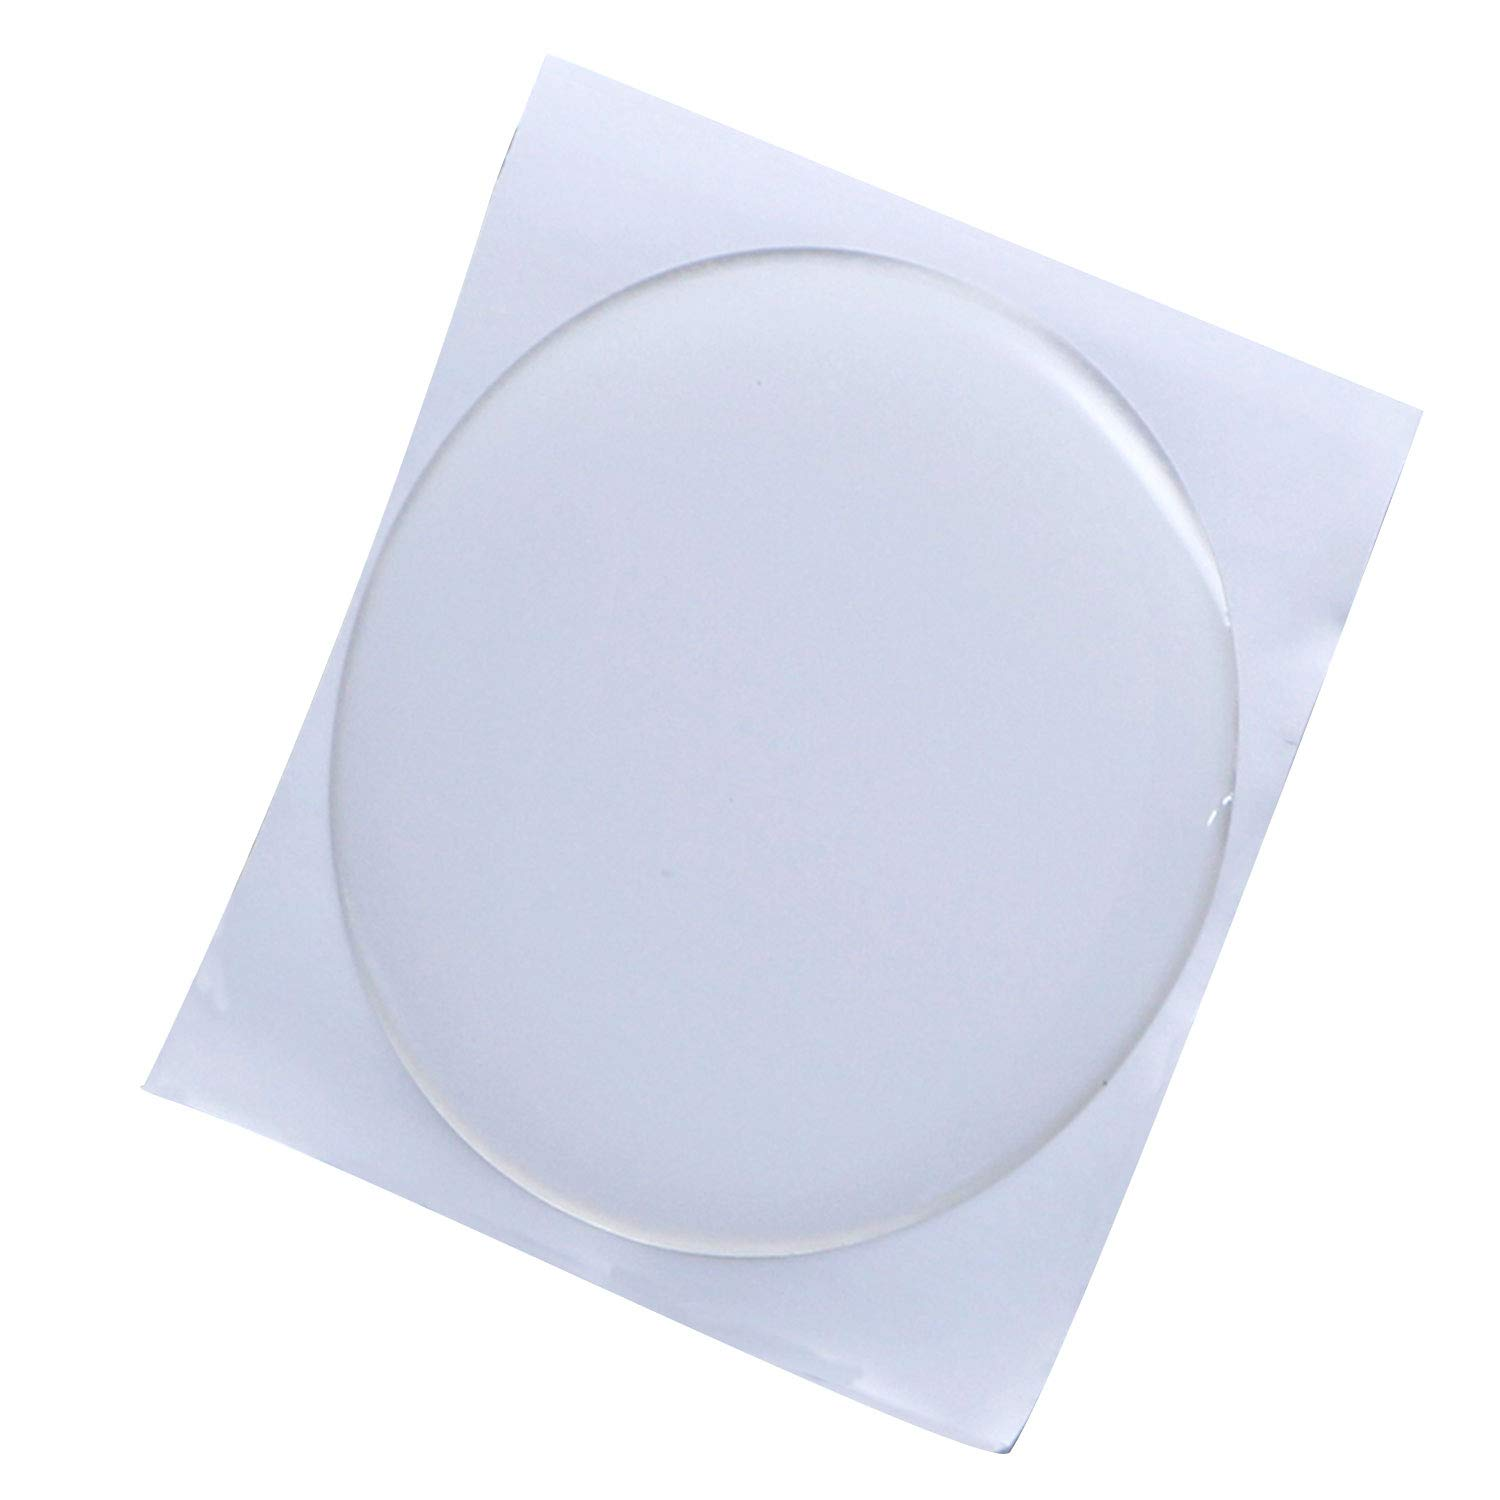 IGOGO 2 Inch Round Epoxy Sticker for Bottle Cap Pendants - (50.8mm) Clear Color,50 PCS